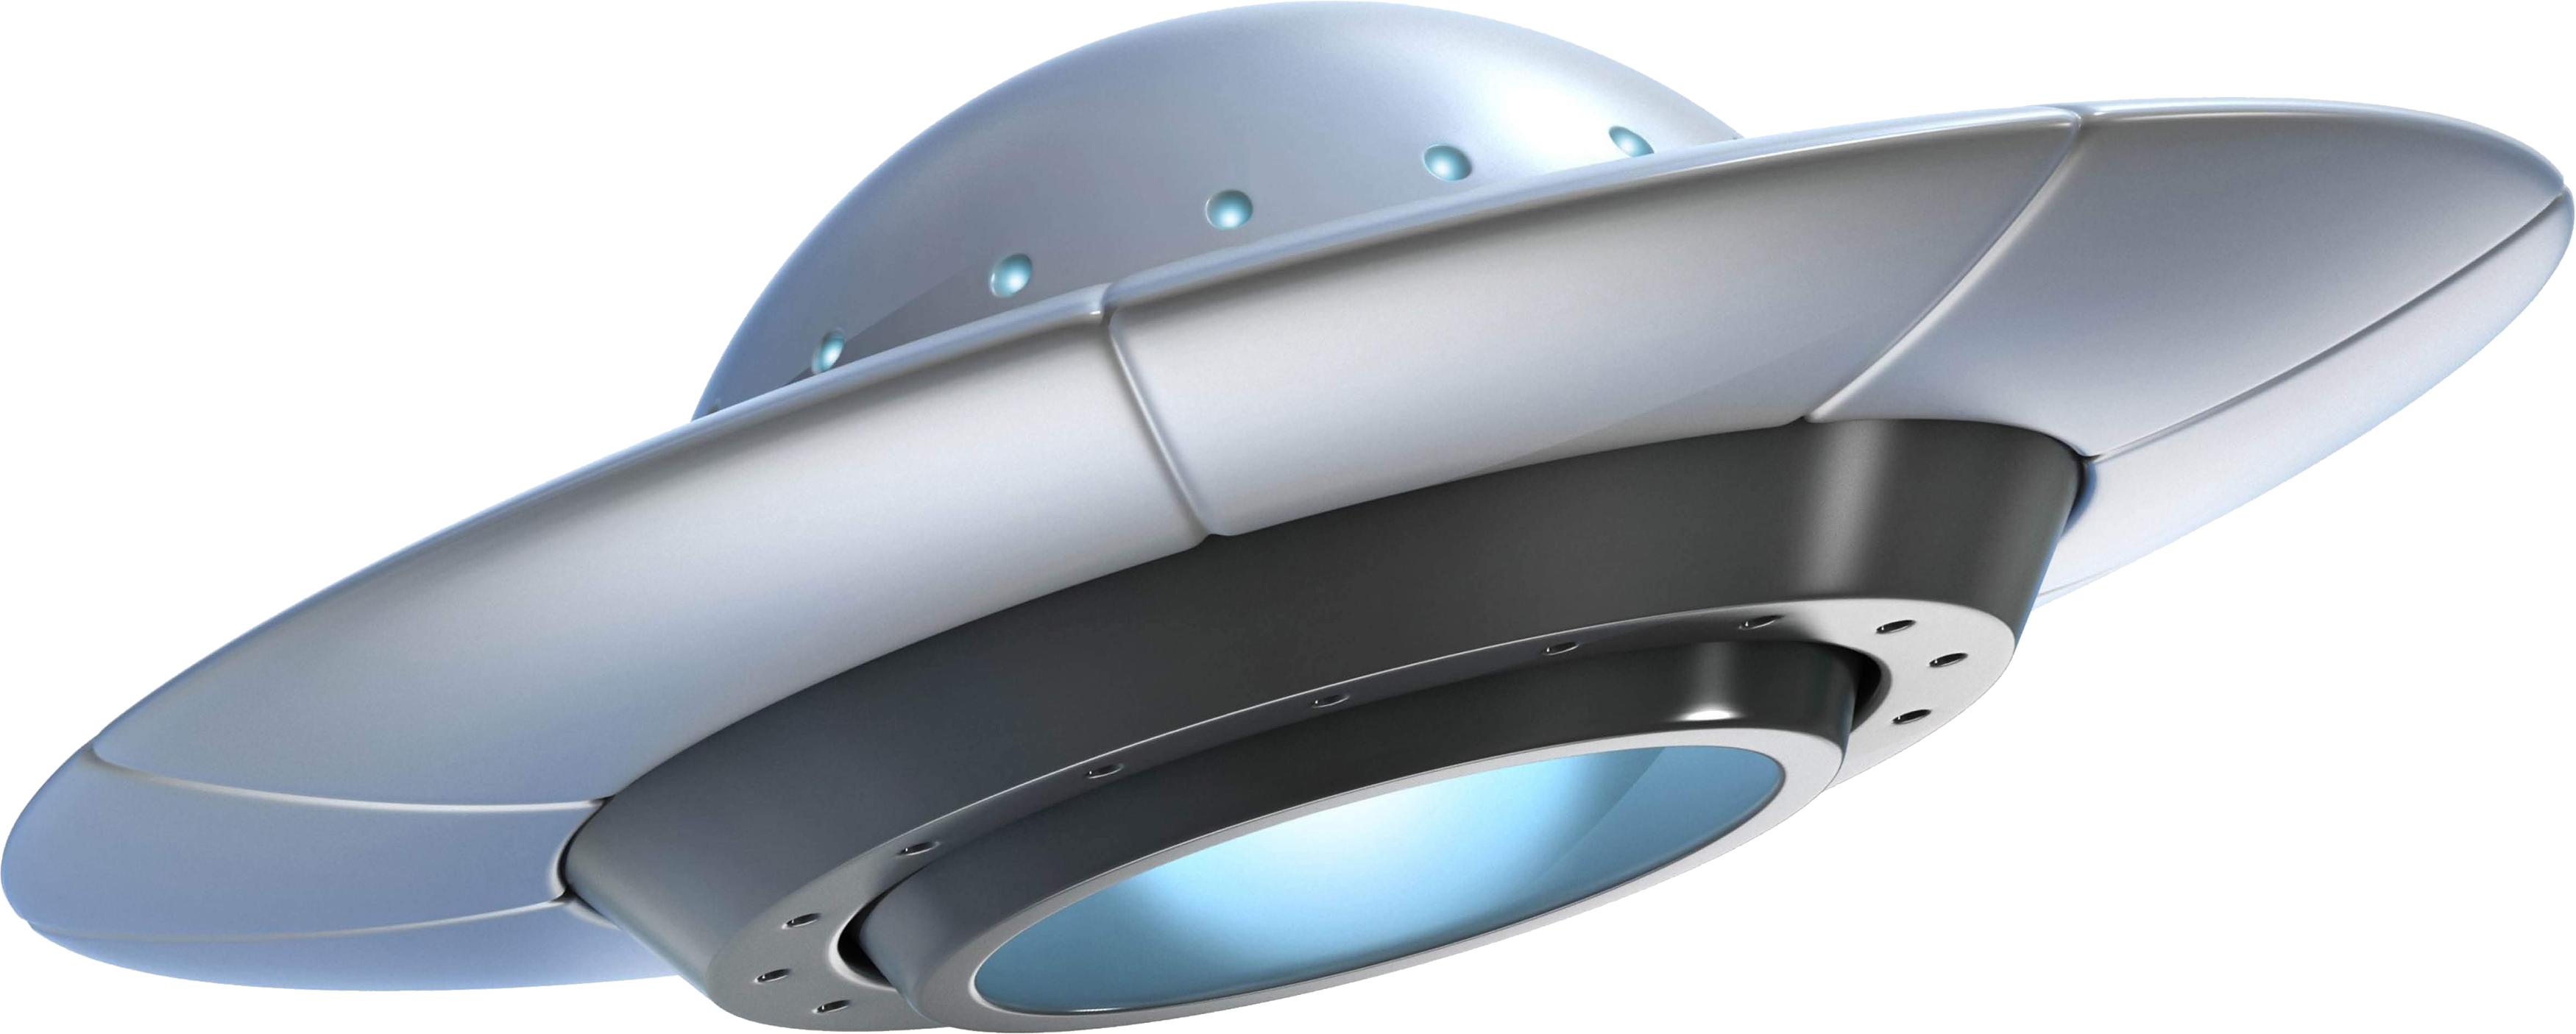 Download PNG Image: Ufo PNG - Ufo PNG HD